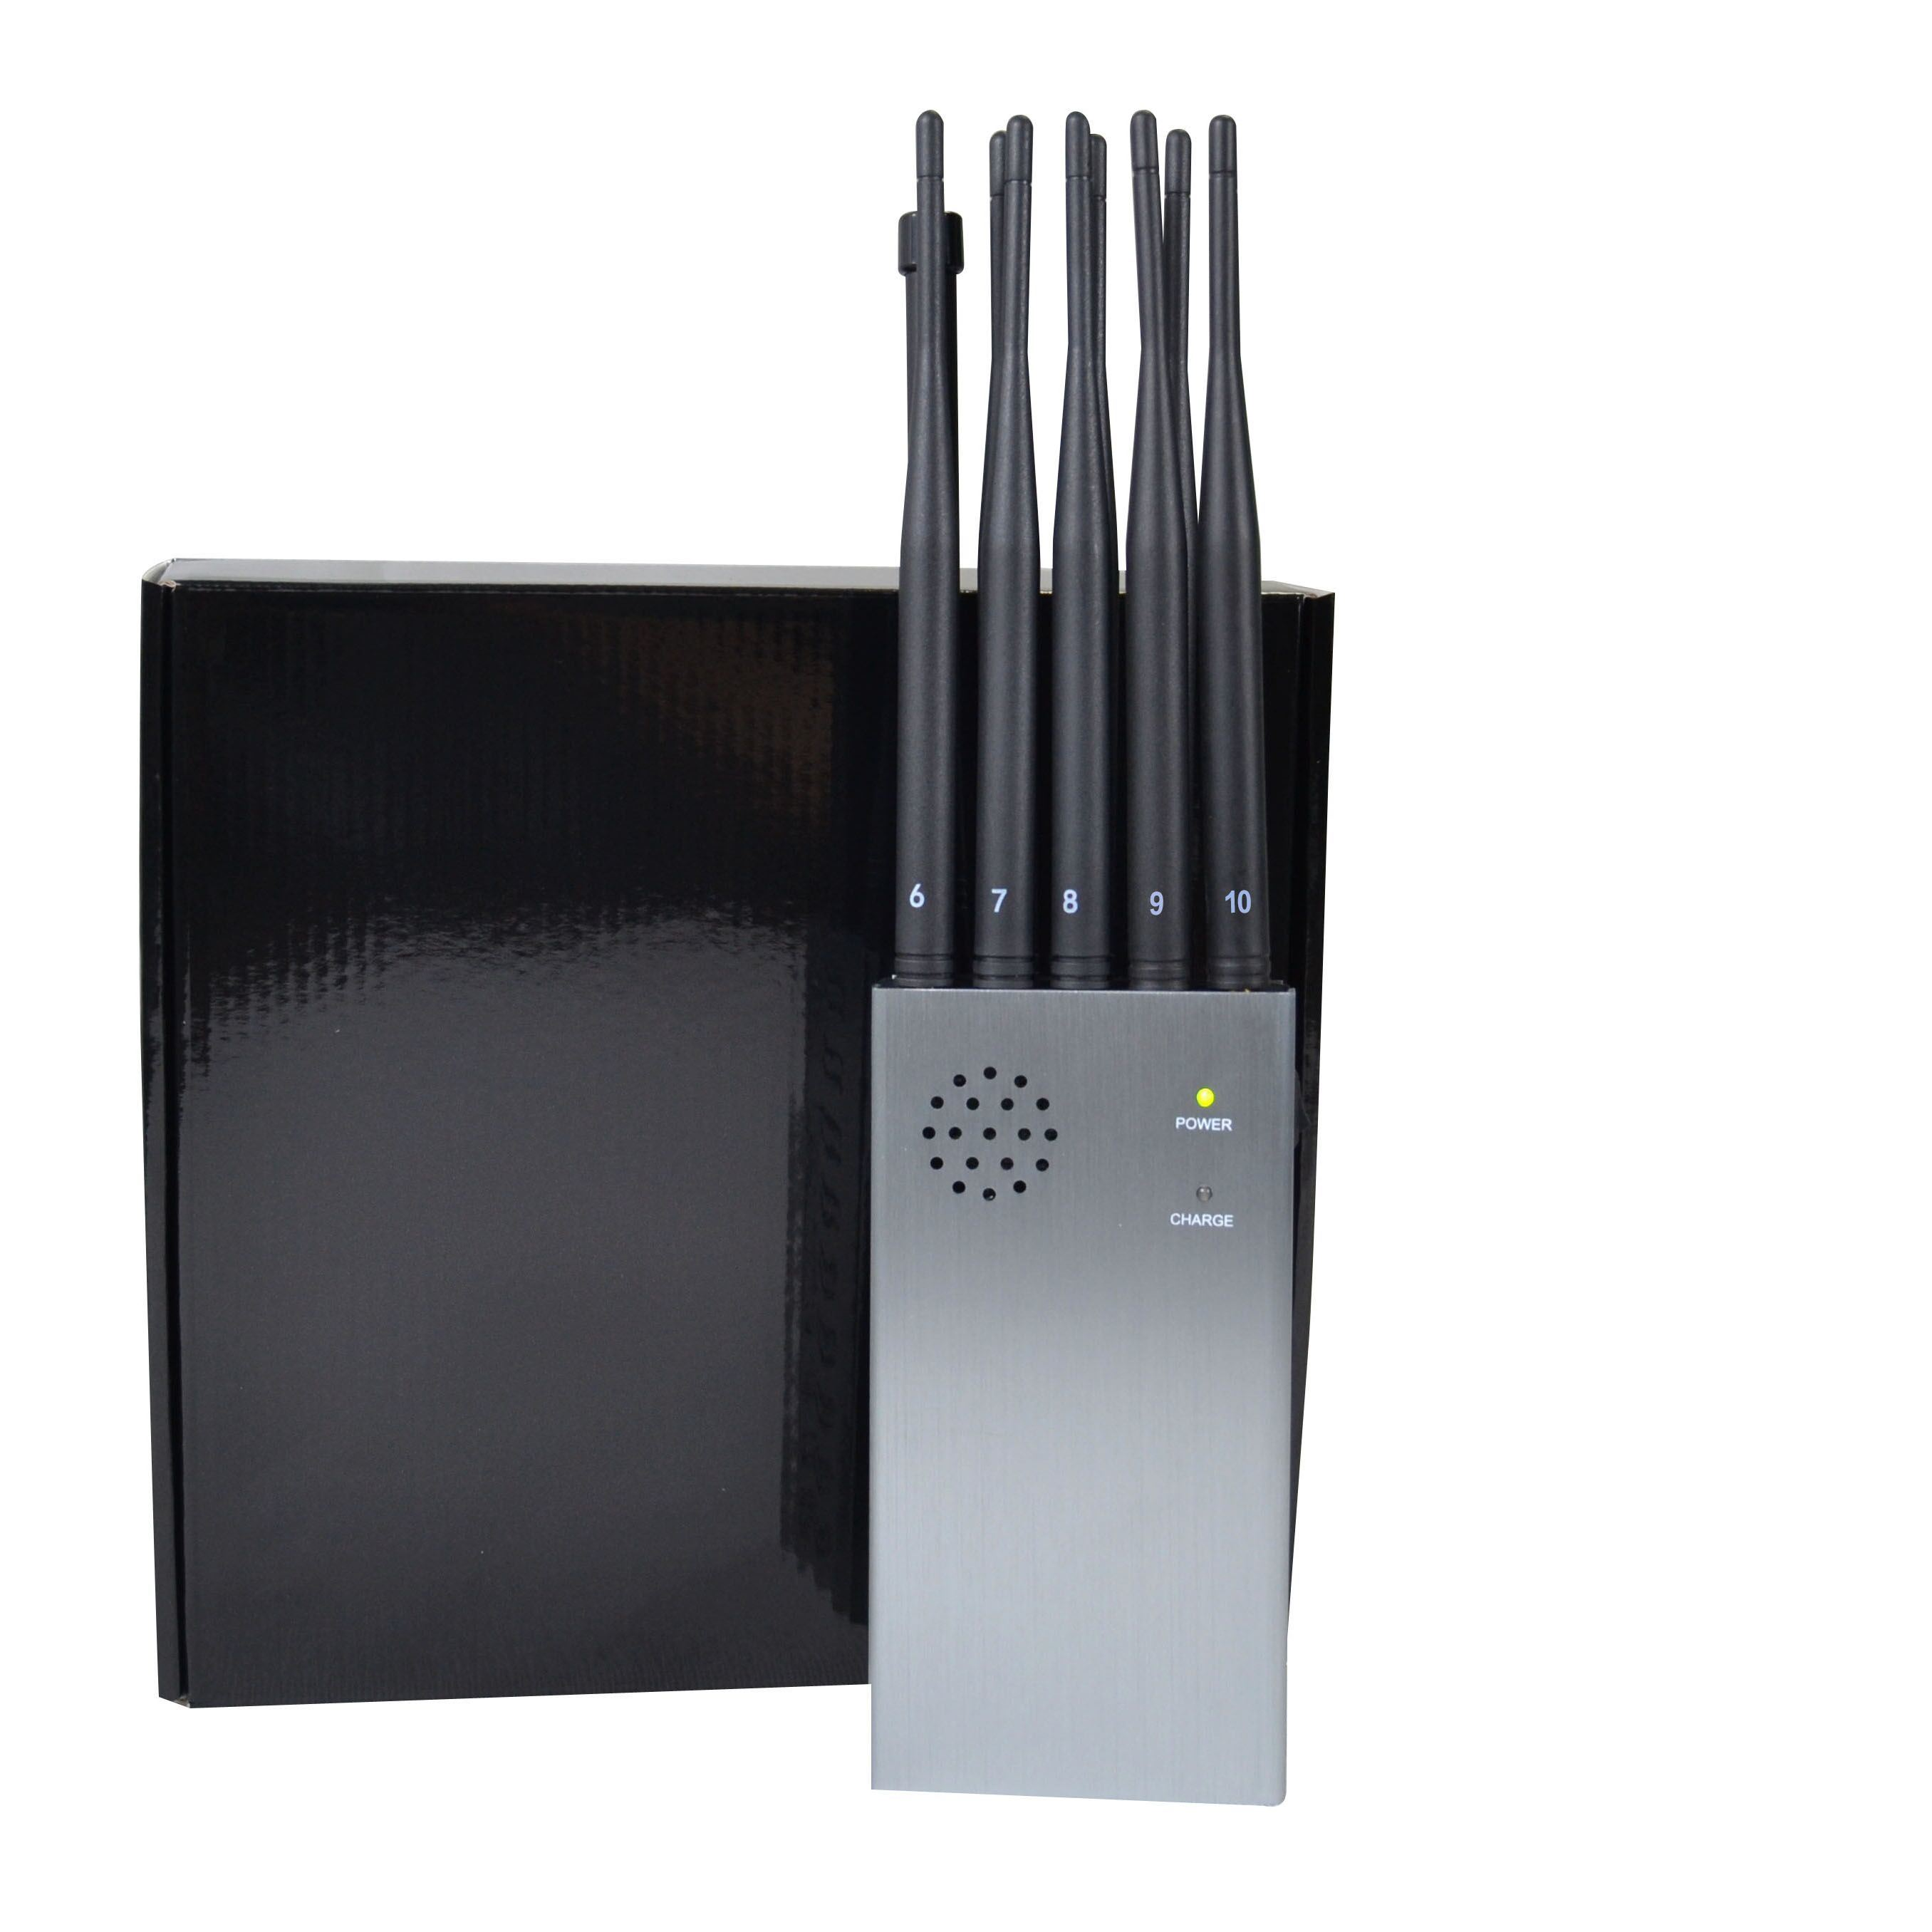 3g 4g wifi mobile phone signal jammer